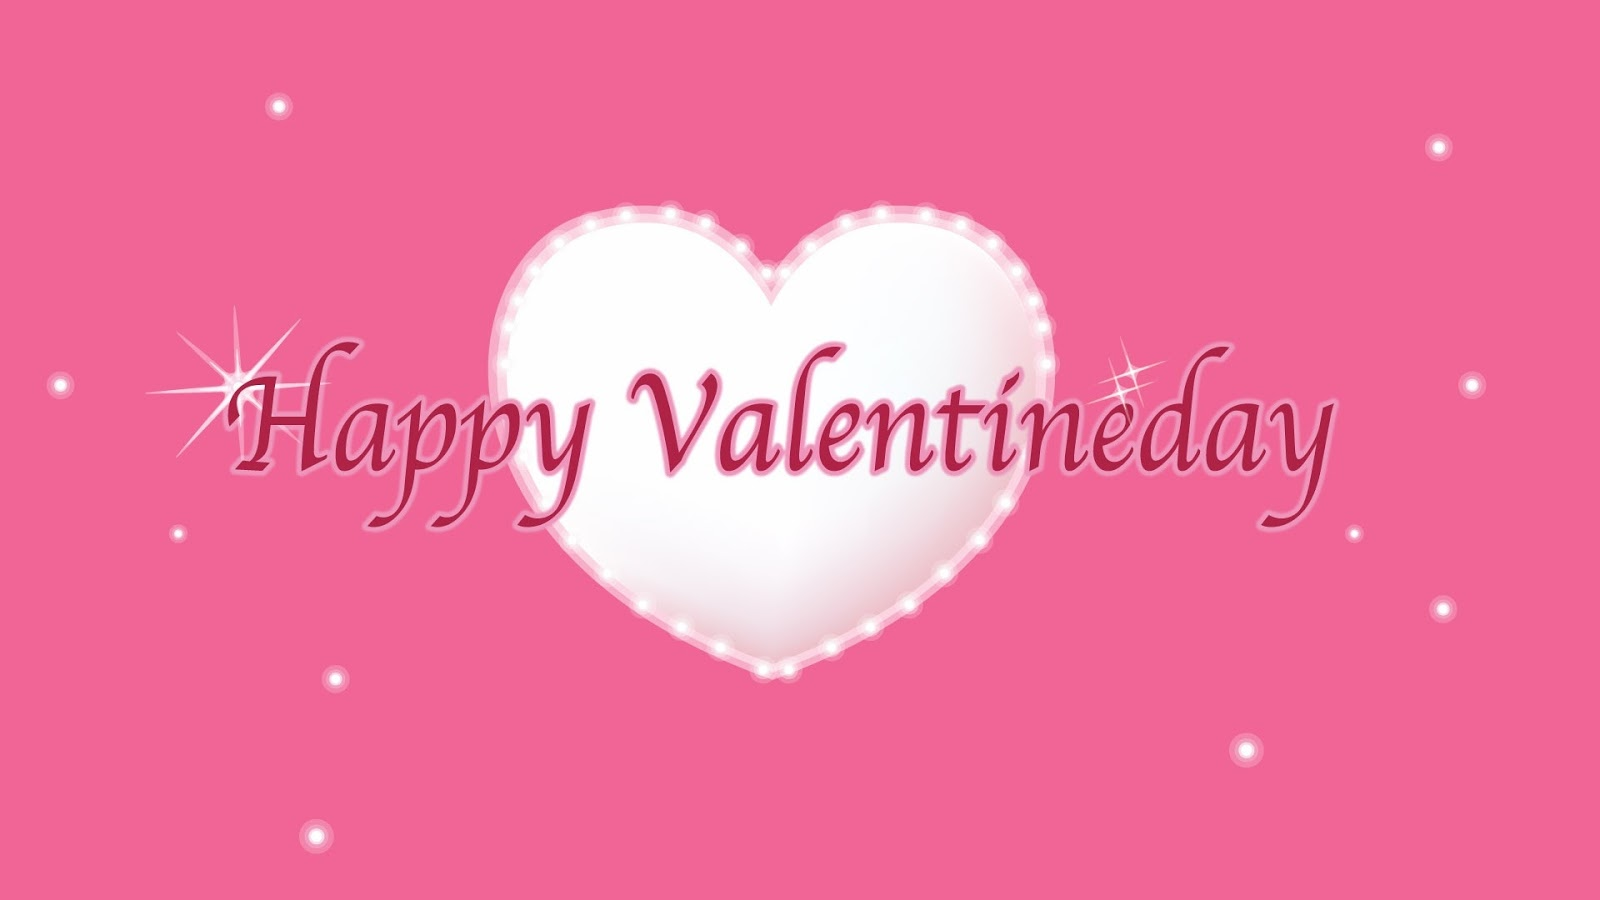 You Are My Valentine 14th February Hd Photos Images Happy Day Greeting Wishes Boy Friend Girl Top Ten Facebook Time Line Cover